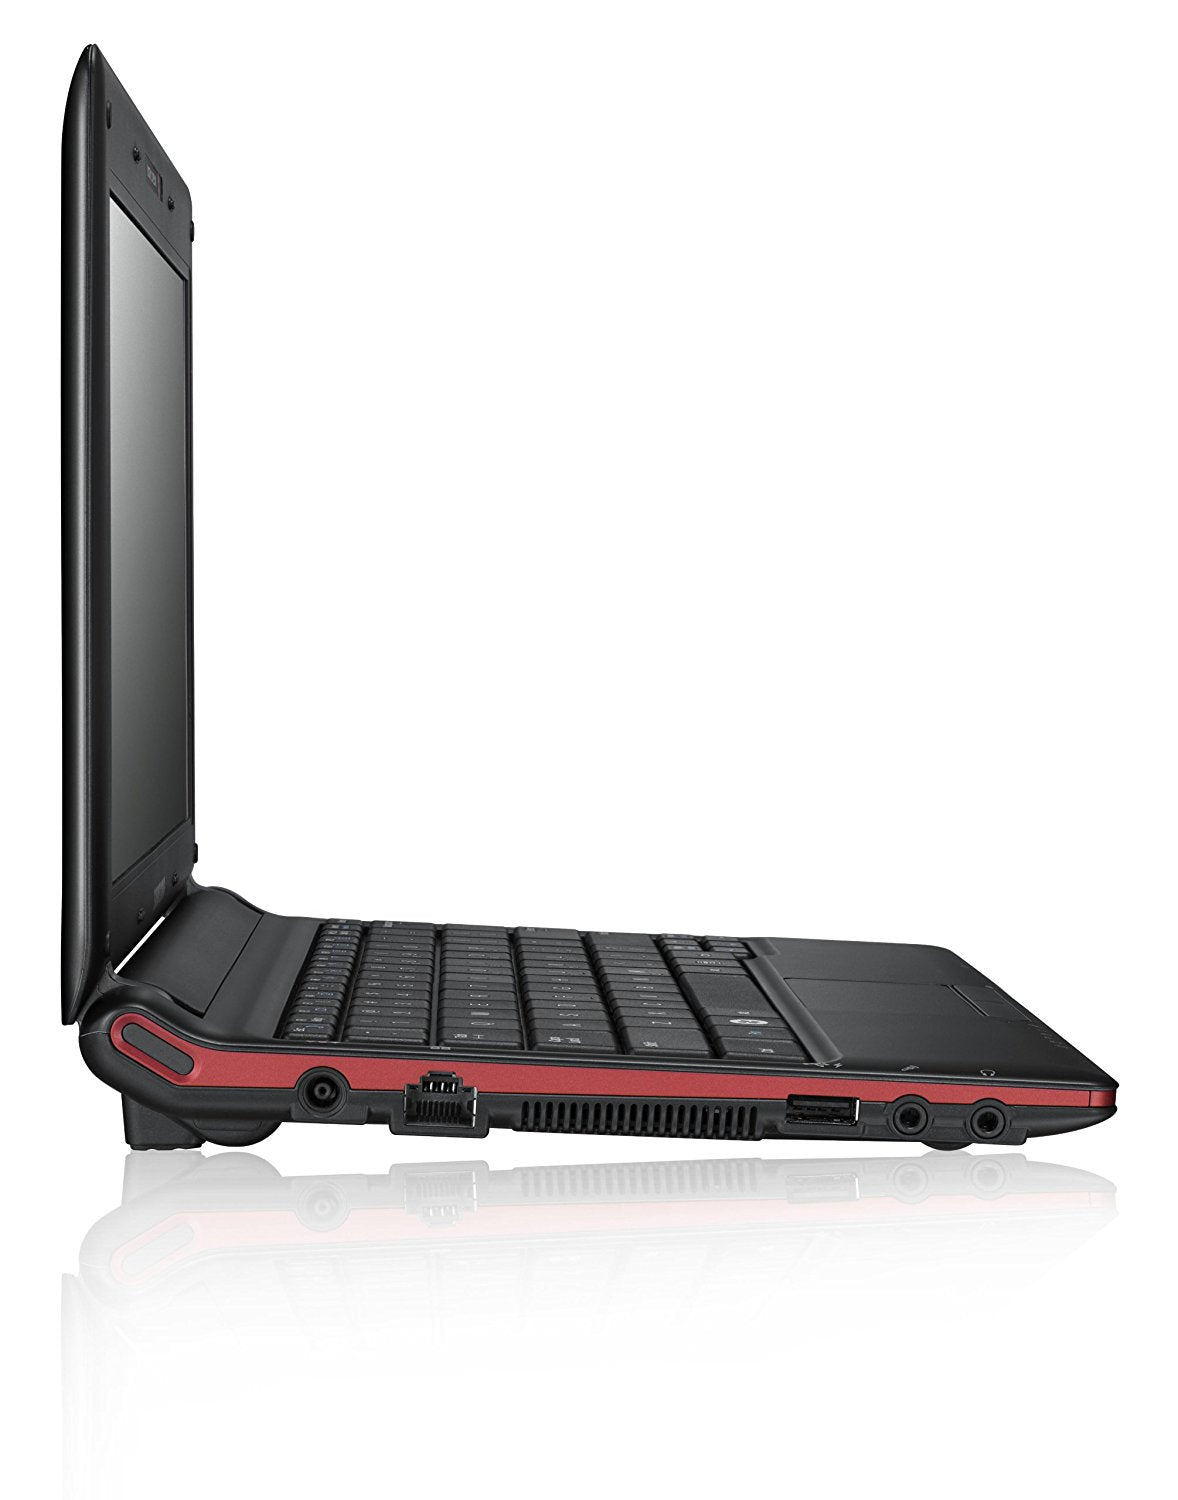 "Lot 5 Samsung NP-N150 10.1"" Netbook Laptop Win7 80GB HDD 2GB RAM Wifi Bluetooth W Travel Case (Used)"